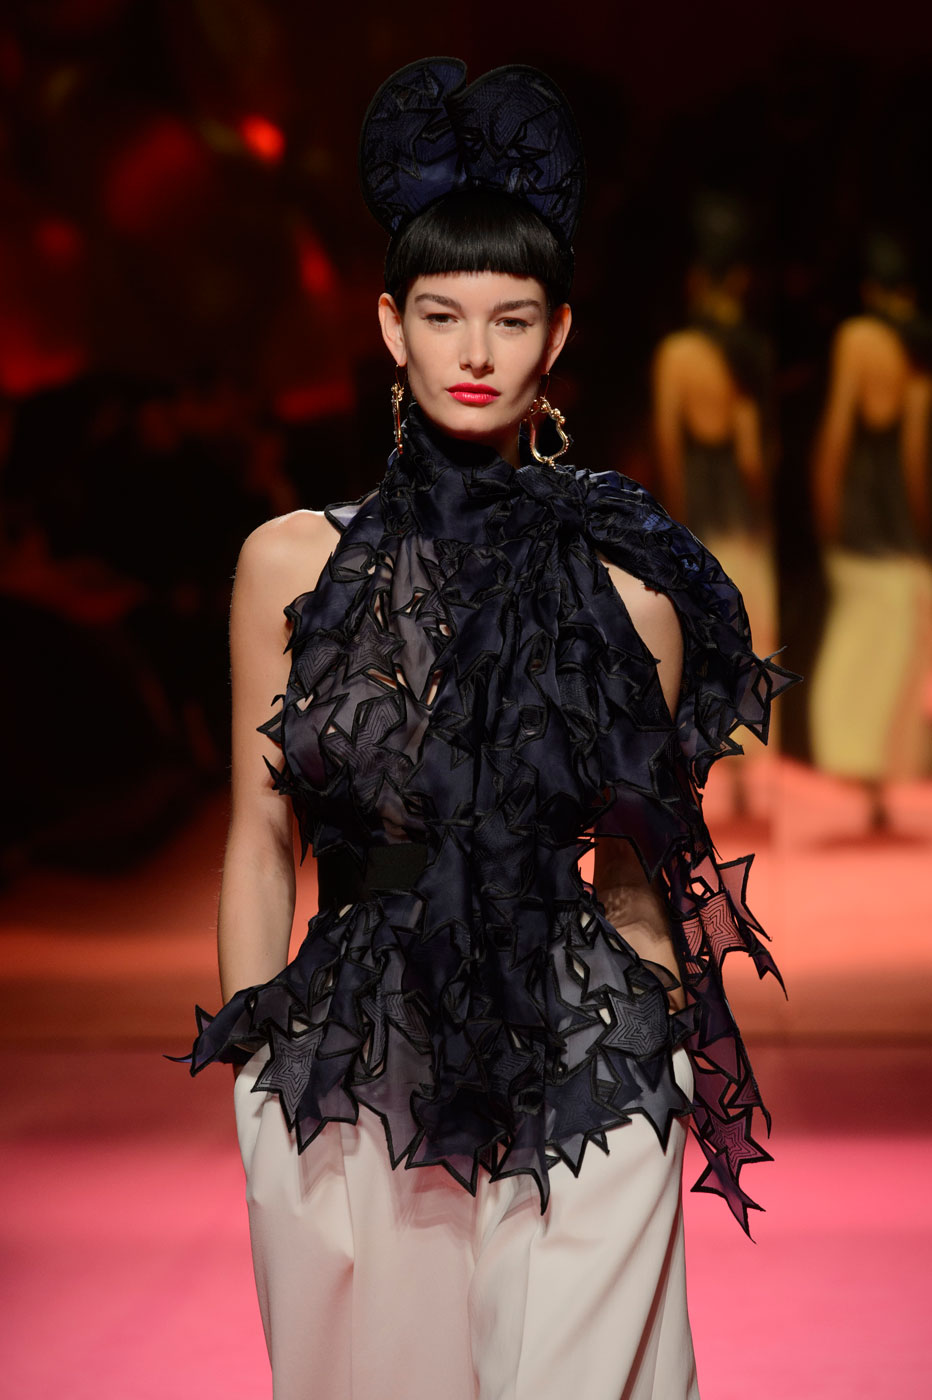 Schiaparelli-fashion-runway-show-haute-couture-paris-spring-summer-2015-the-impression-12